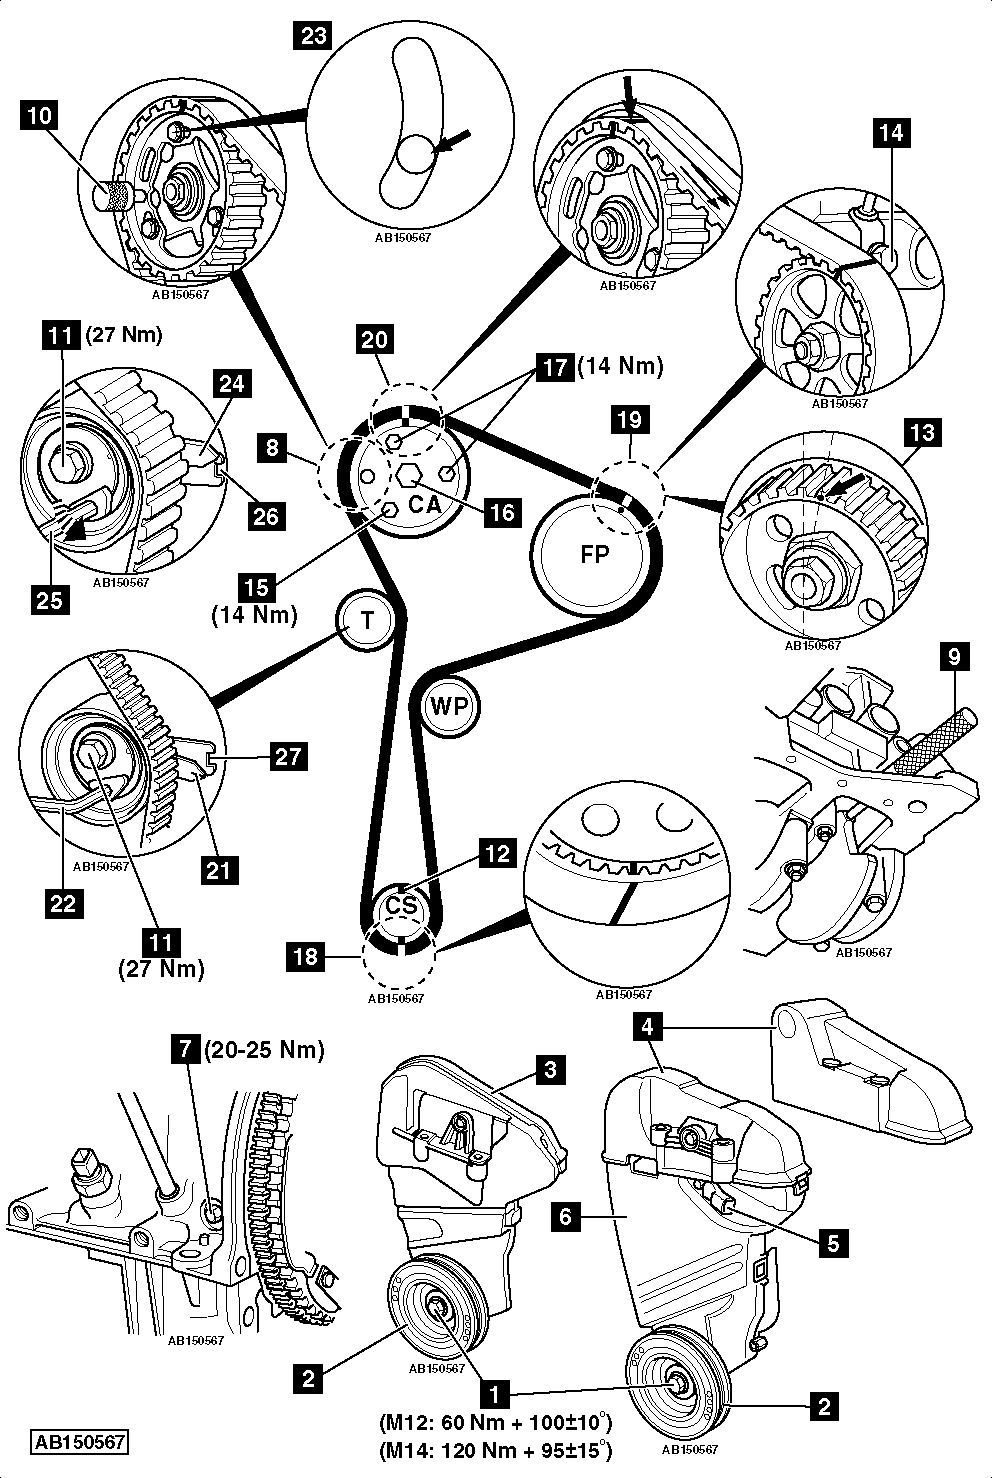 2008 Hyundai Azera Fuse Diagram Wiring Will Be A Thing Box Images Gallery